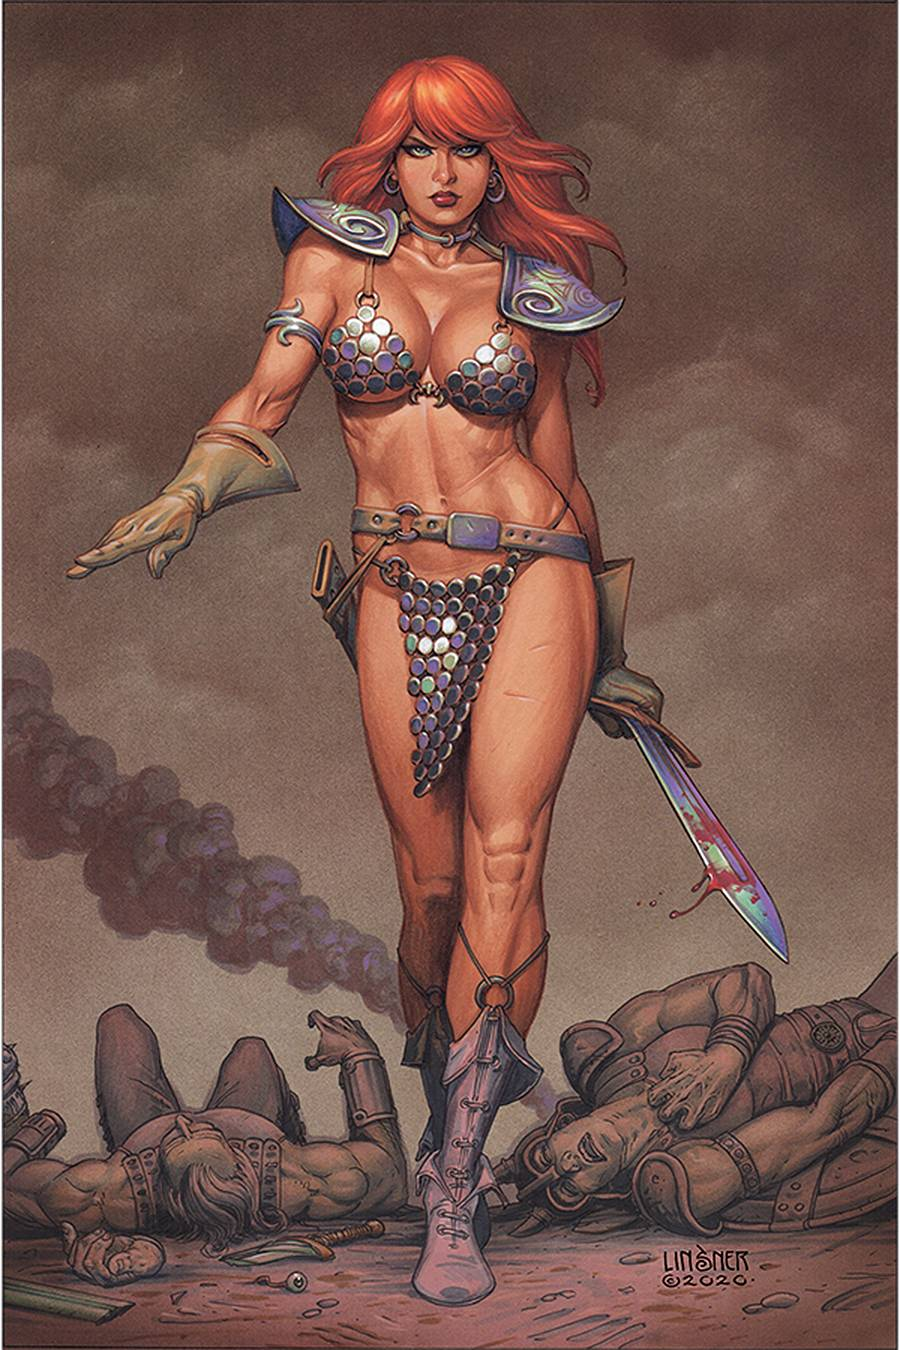 RED SONJA LINSNER LTD VIRGIN CVR